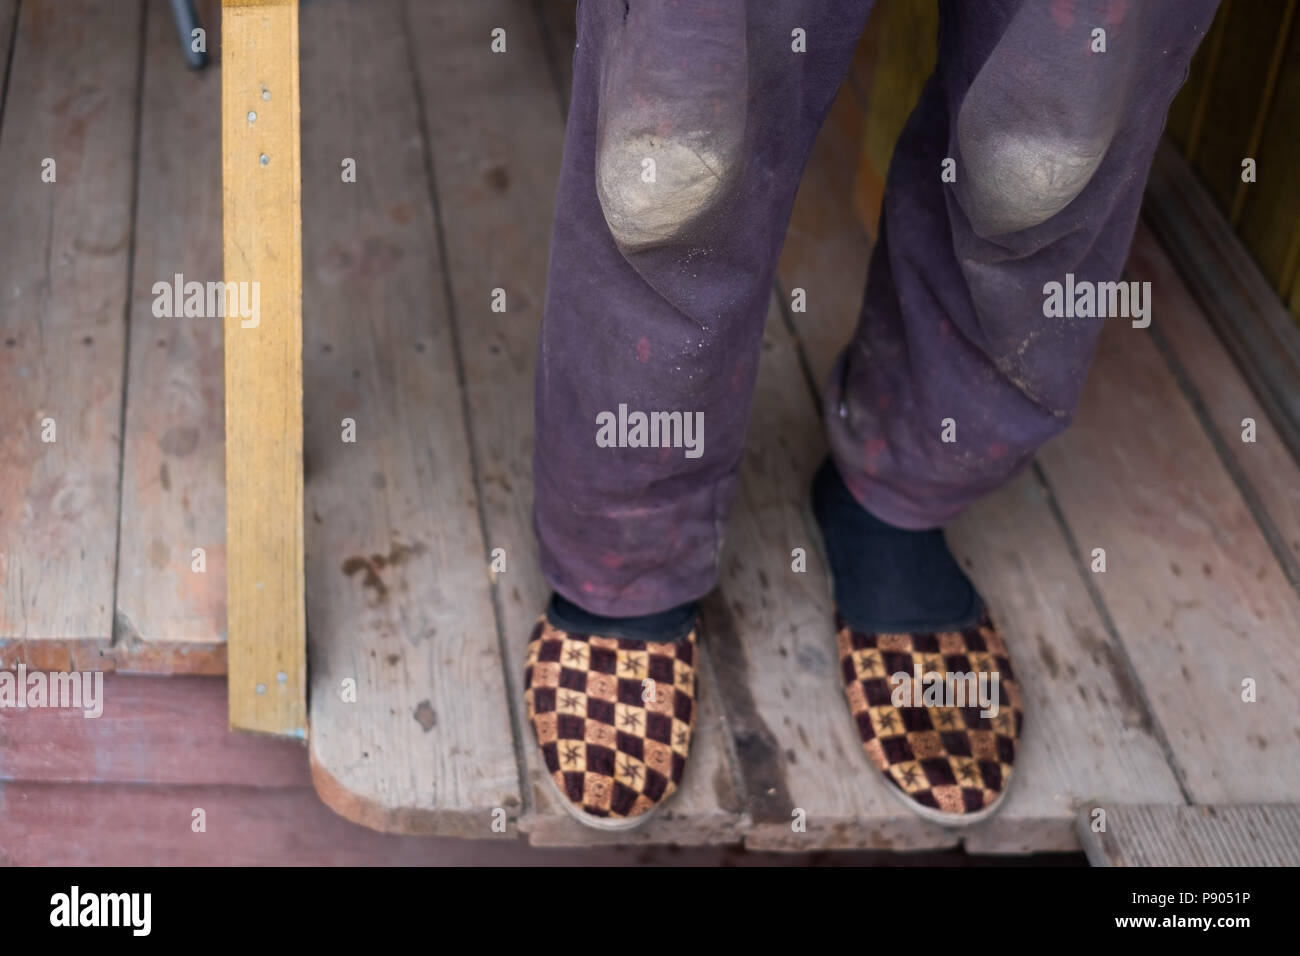 cdf69d375cf3 warm shabby slippers on the background of old wooden floor. - Stock Image